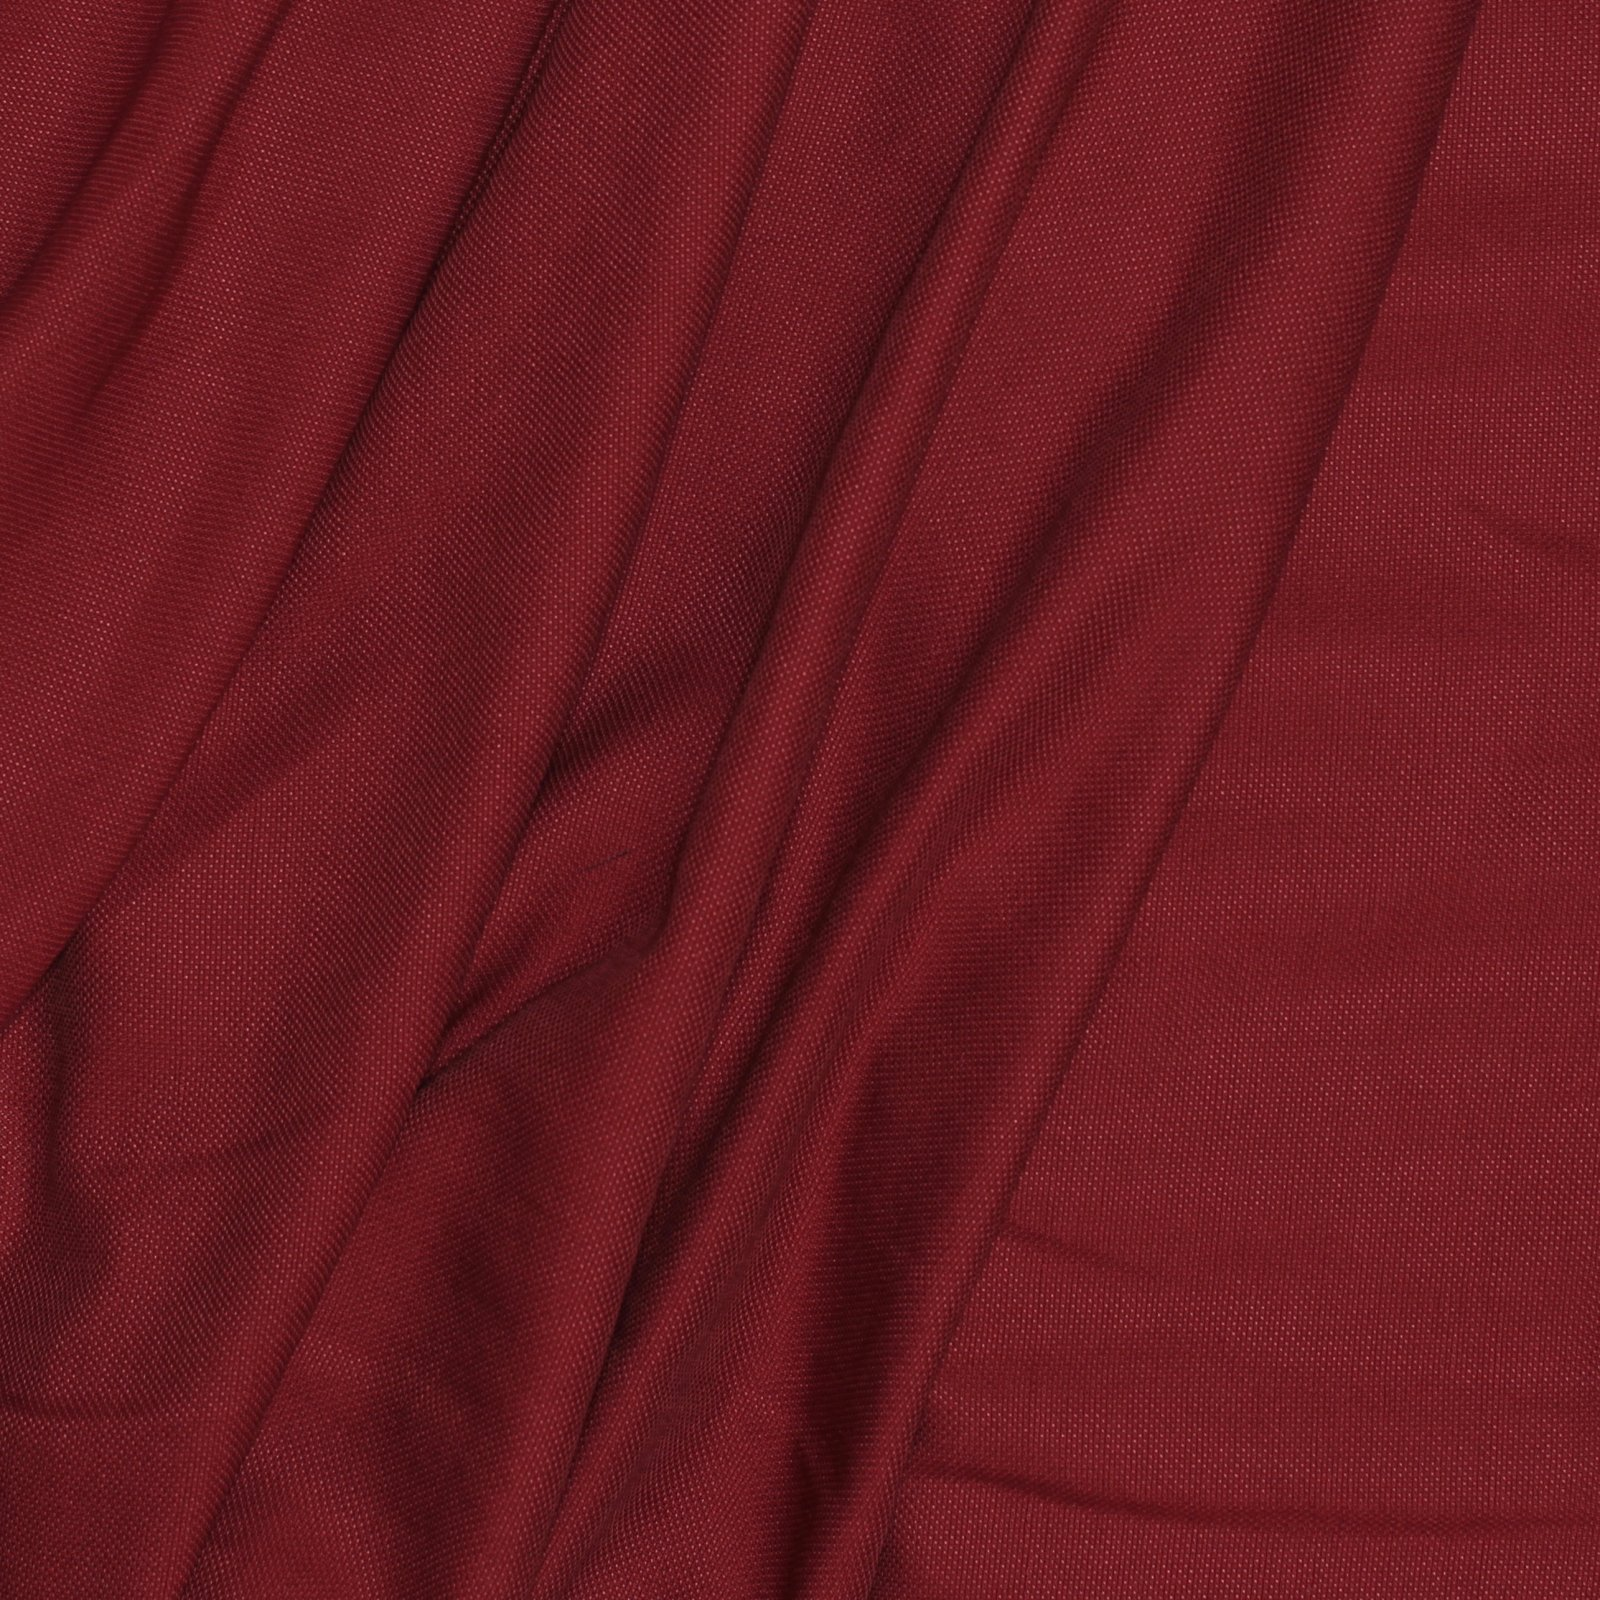 Brick Red Plain Weave Italian Silk/Cotton Blend